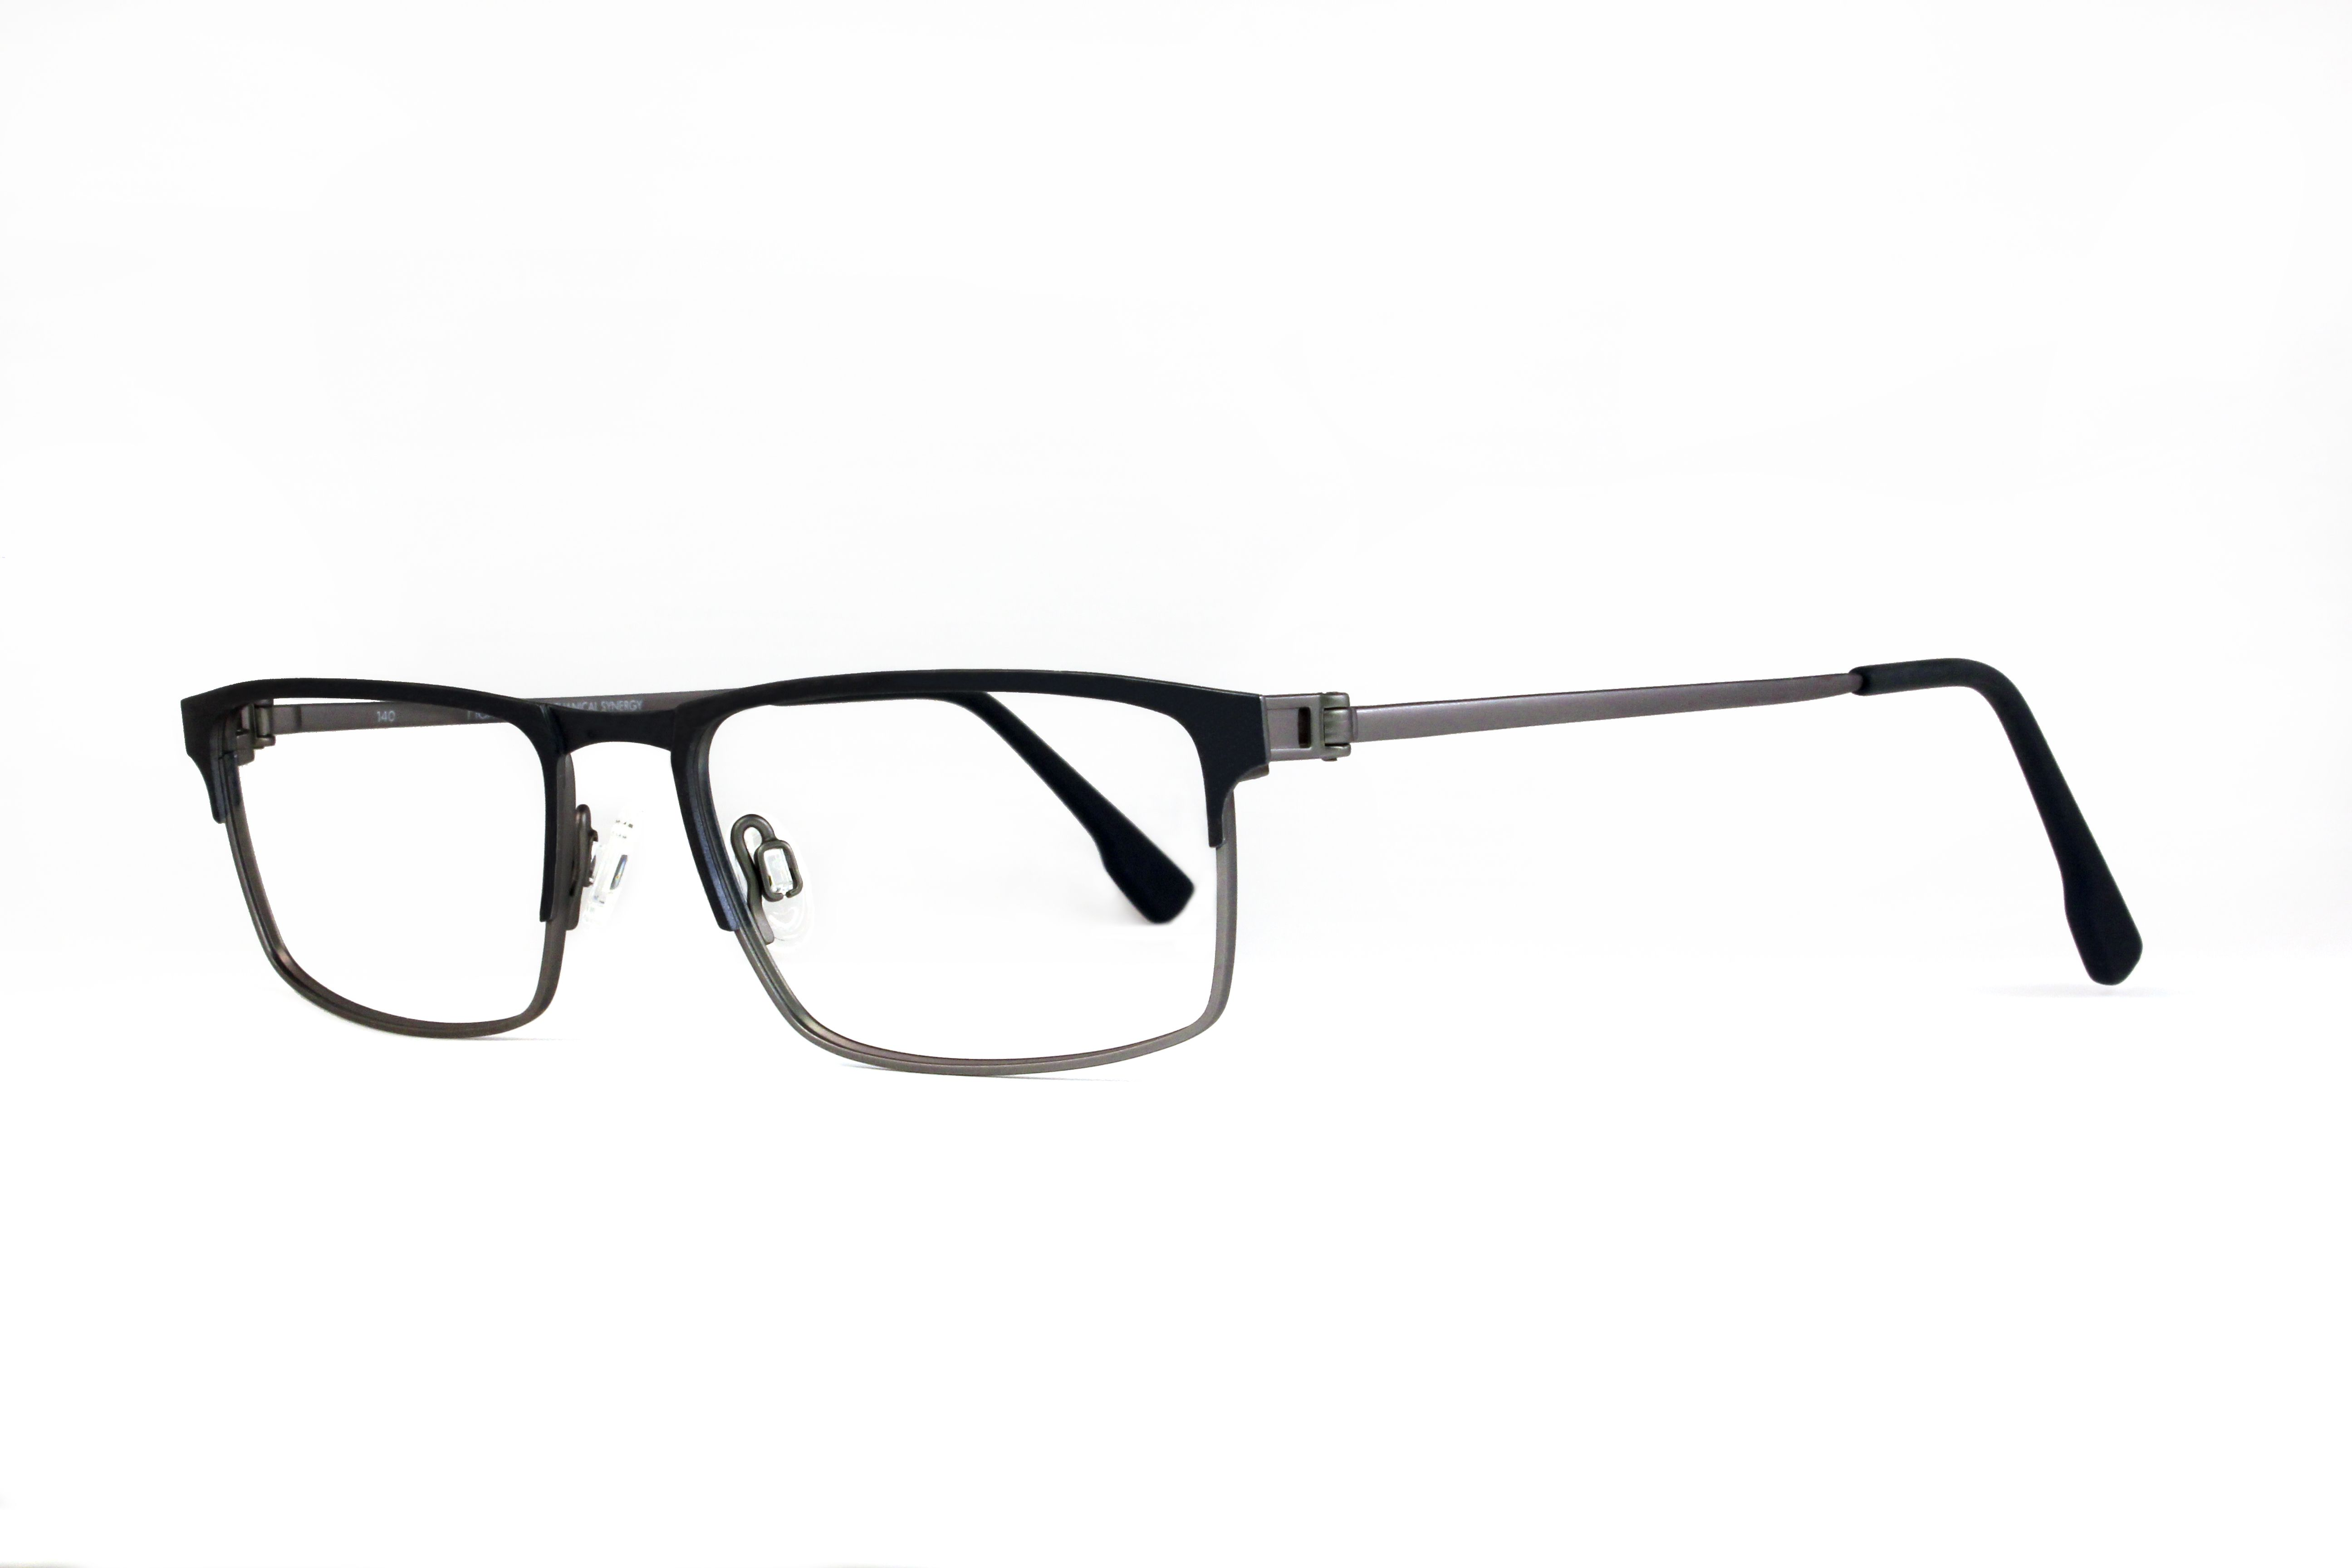 Check out these classic metal frames with a thicker brow line ...